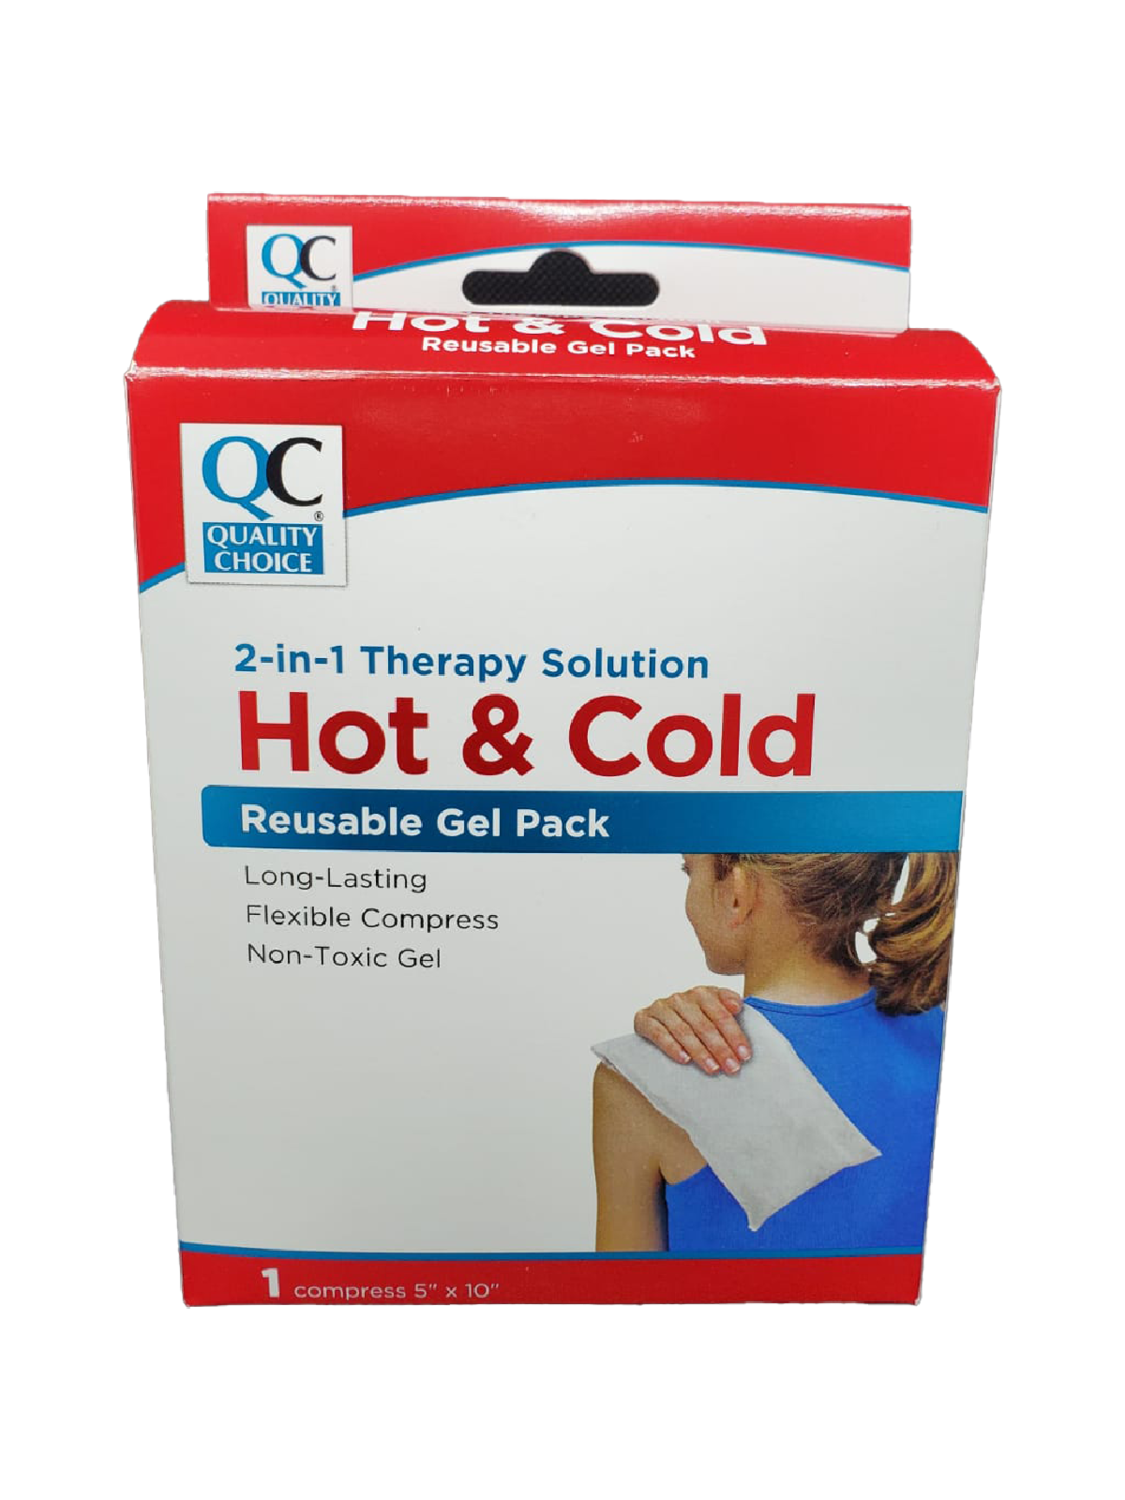 QC Hot & Cold Reusable Gel Pack